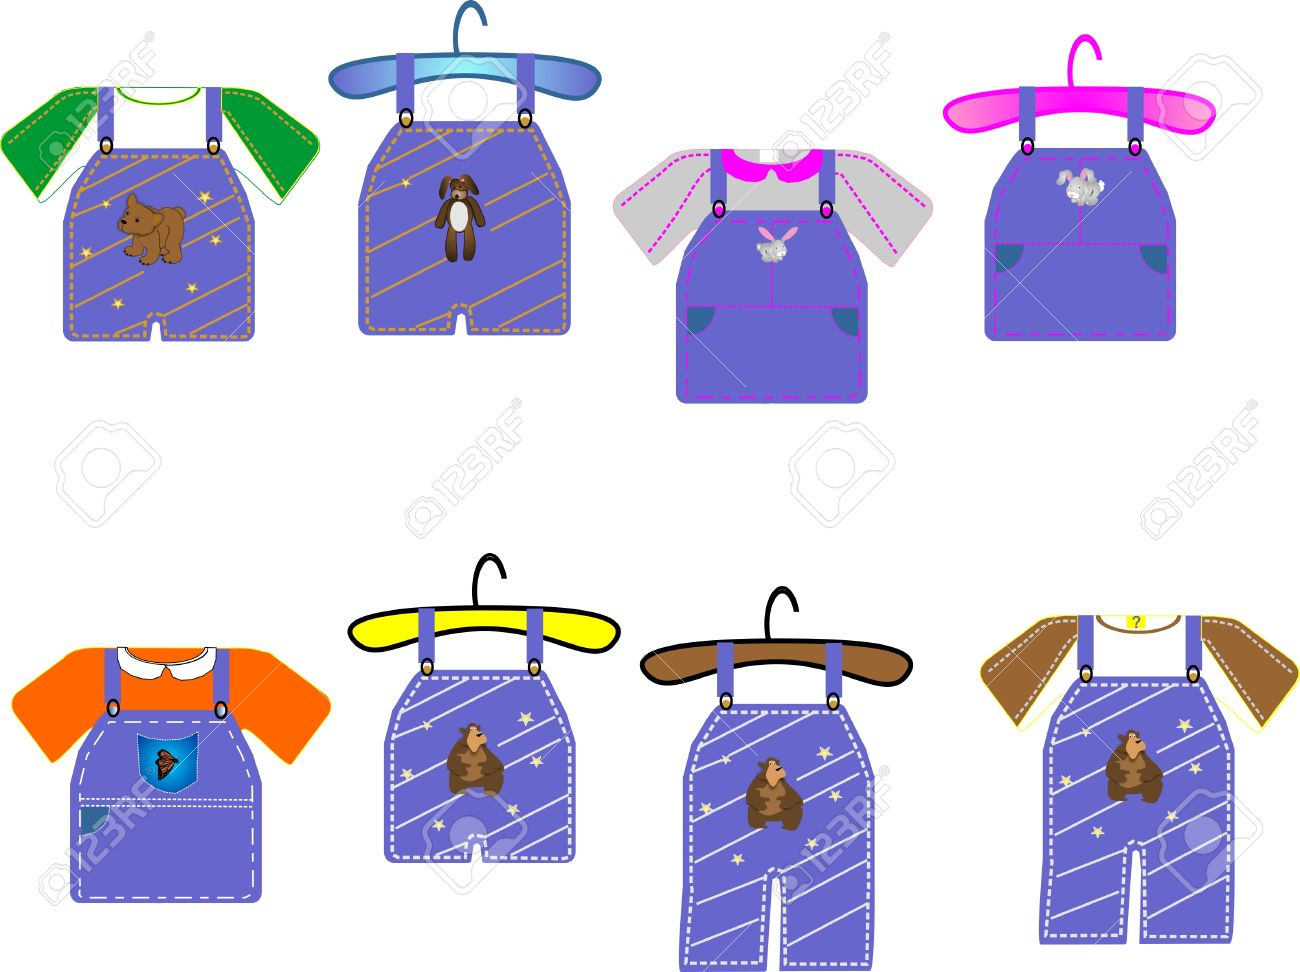 Kids shirt clipart 2 » Clipart Station.